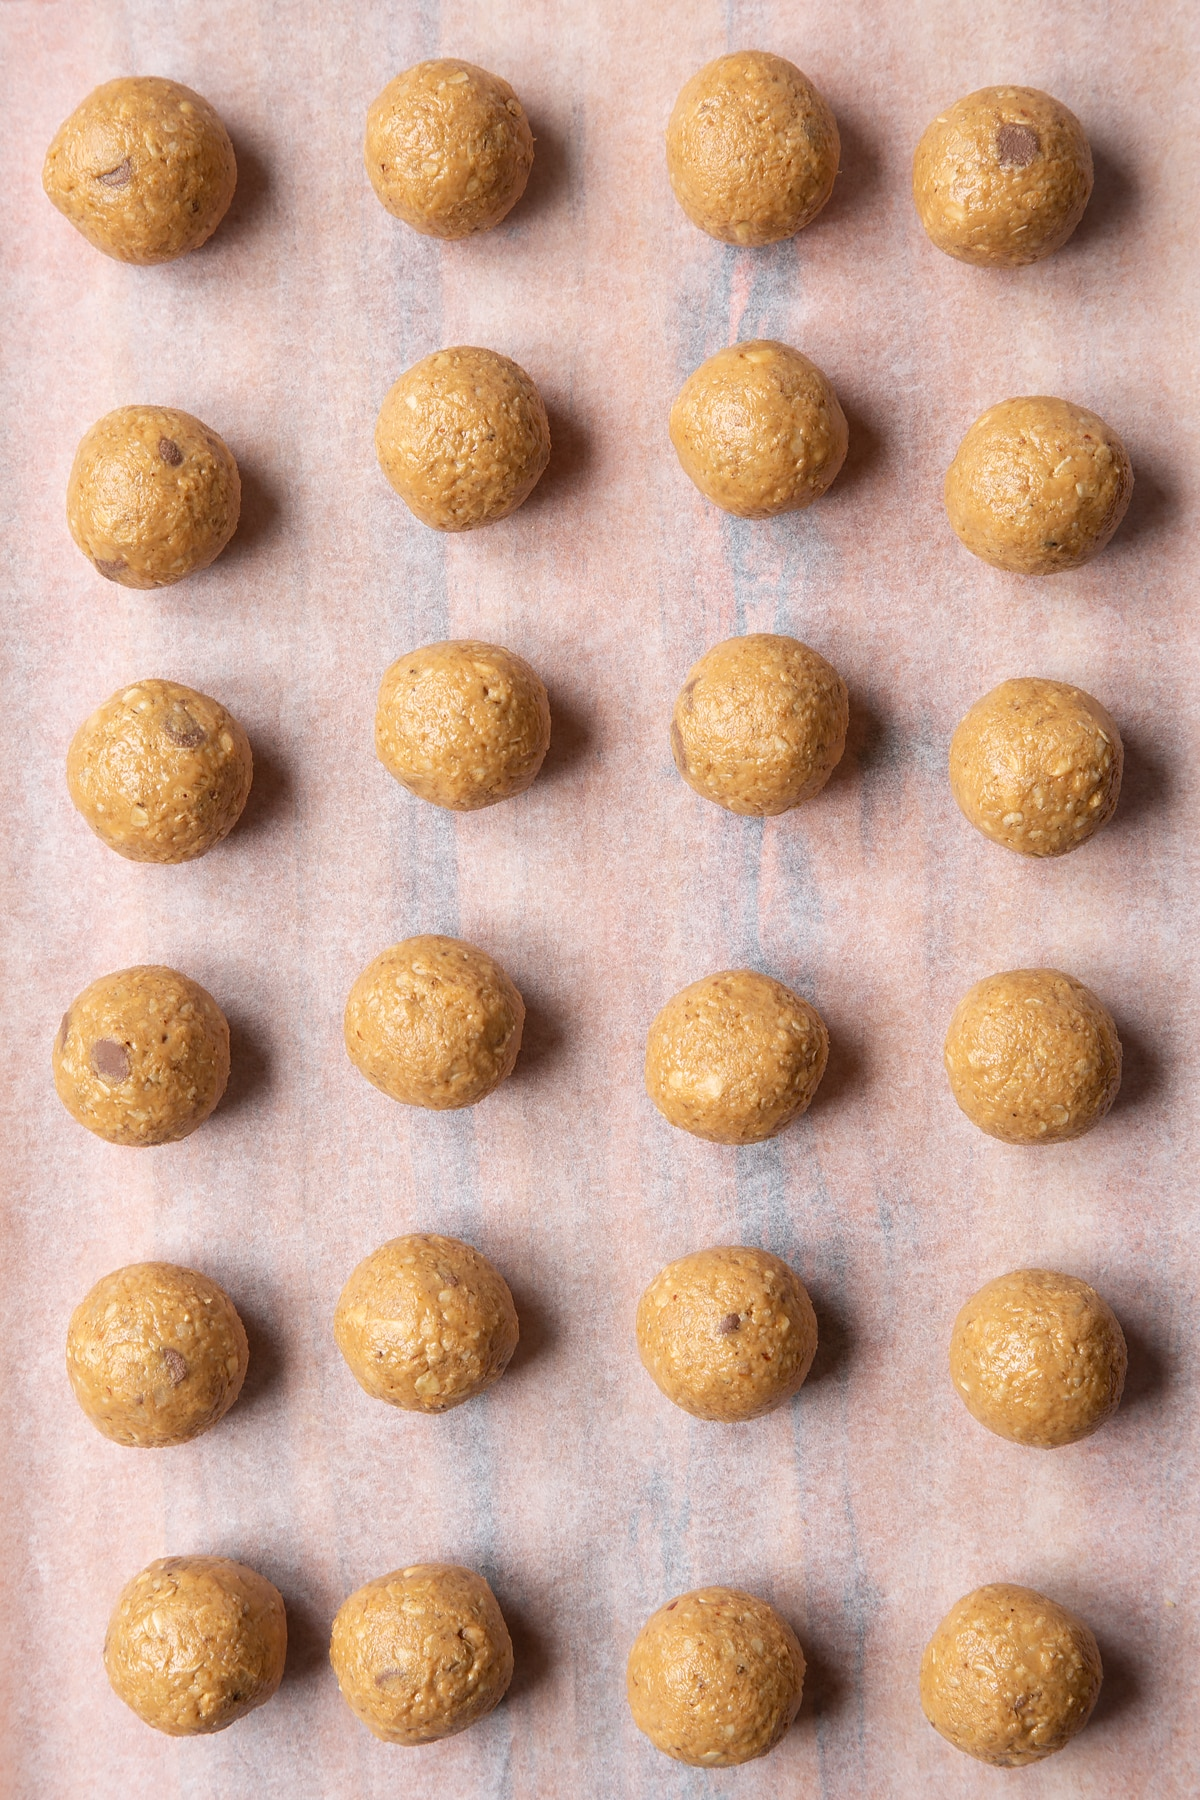 Peanut butter and oatmeal balls on a sheet of baking paper.